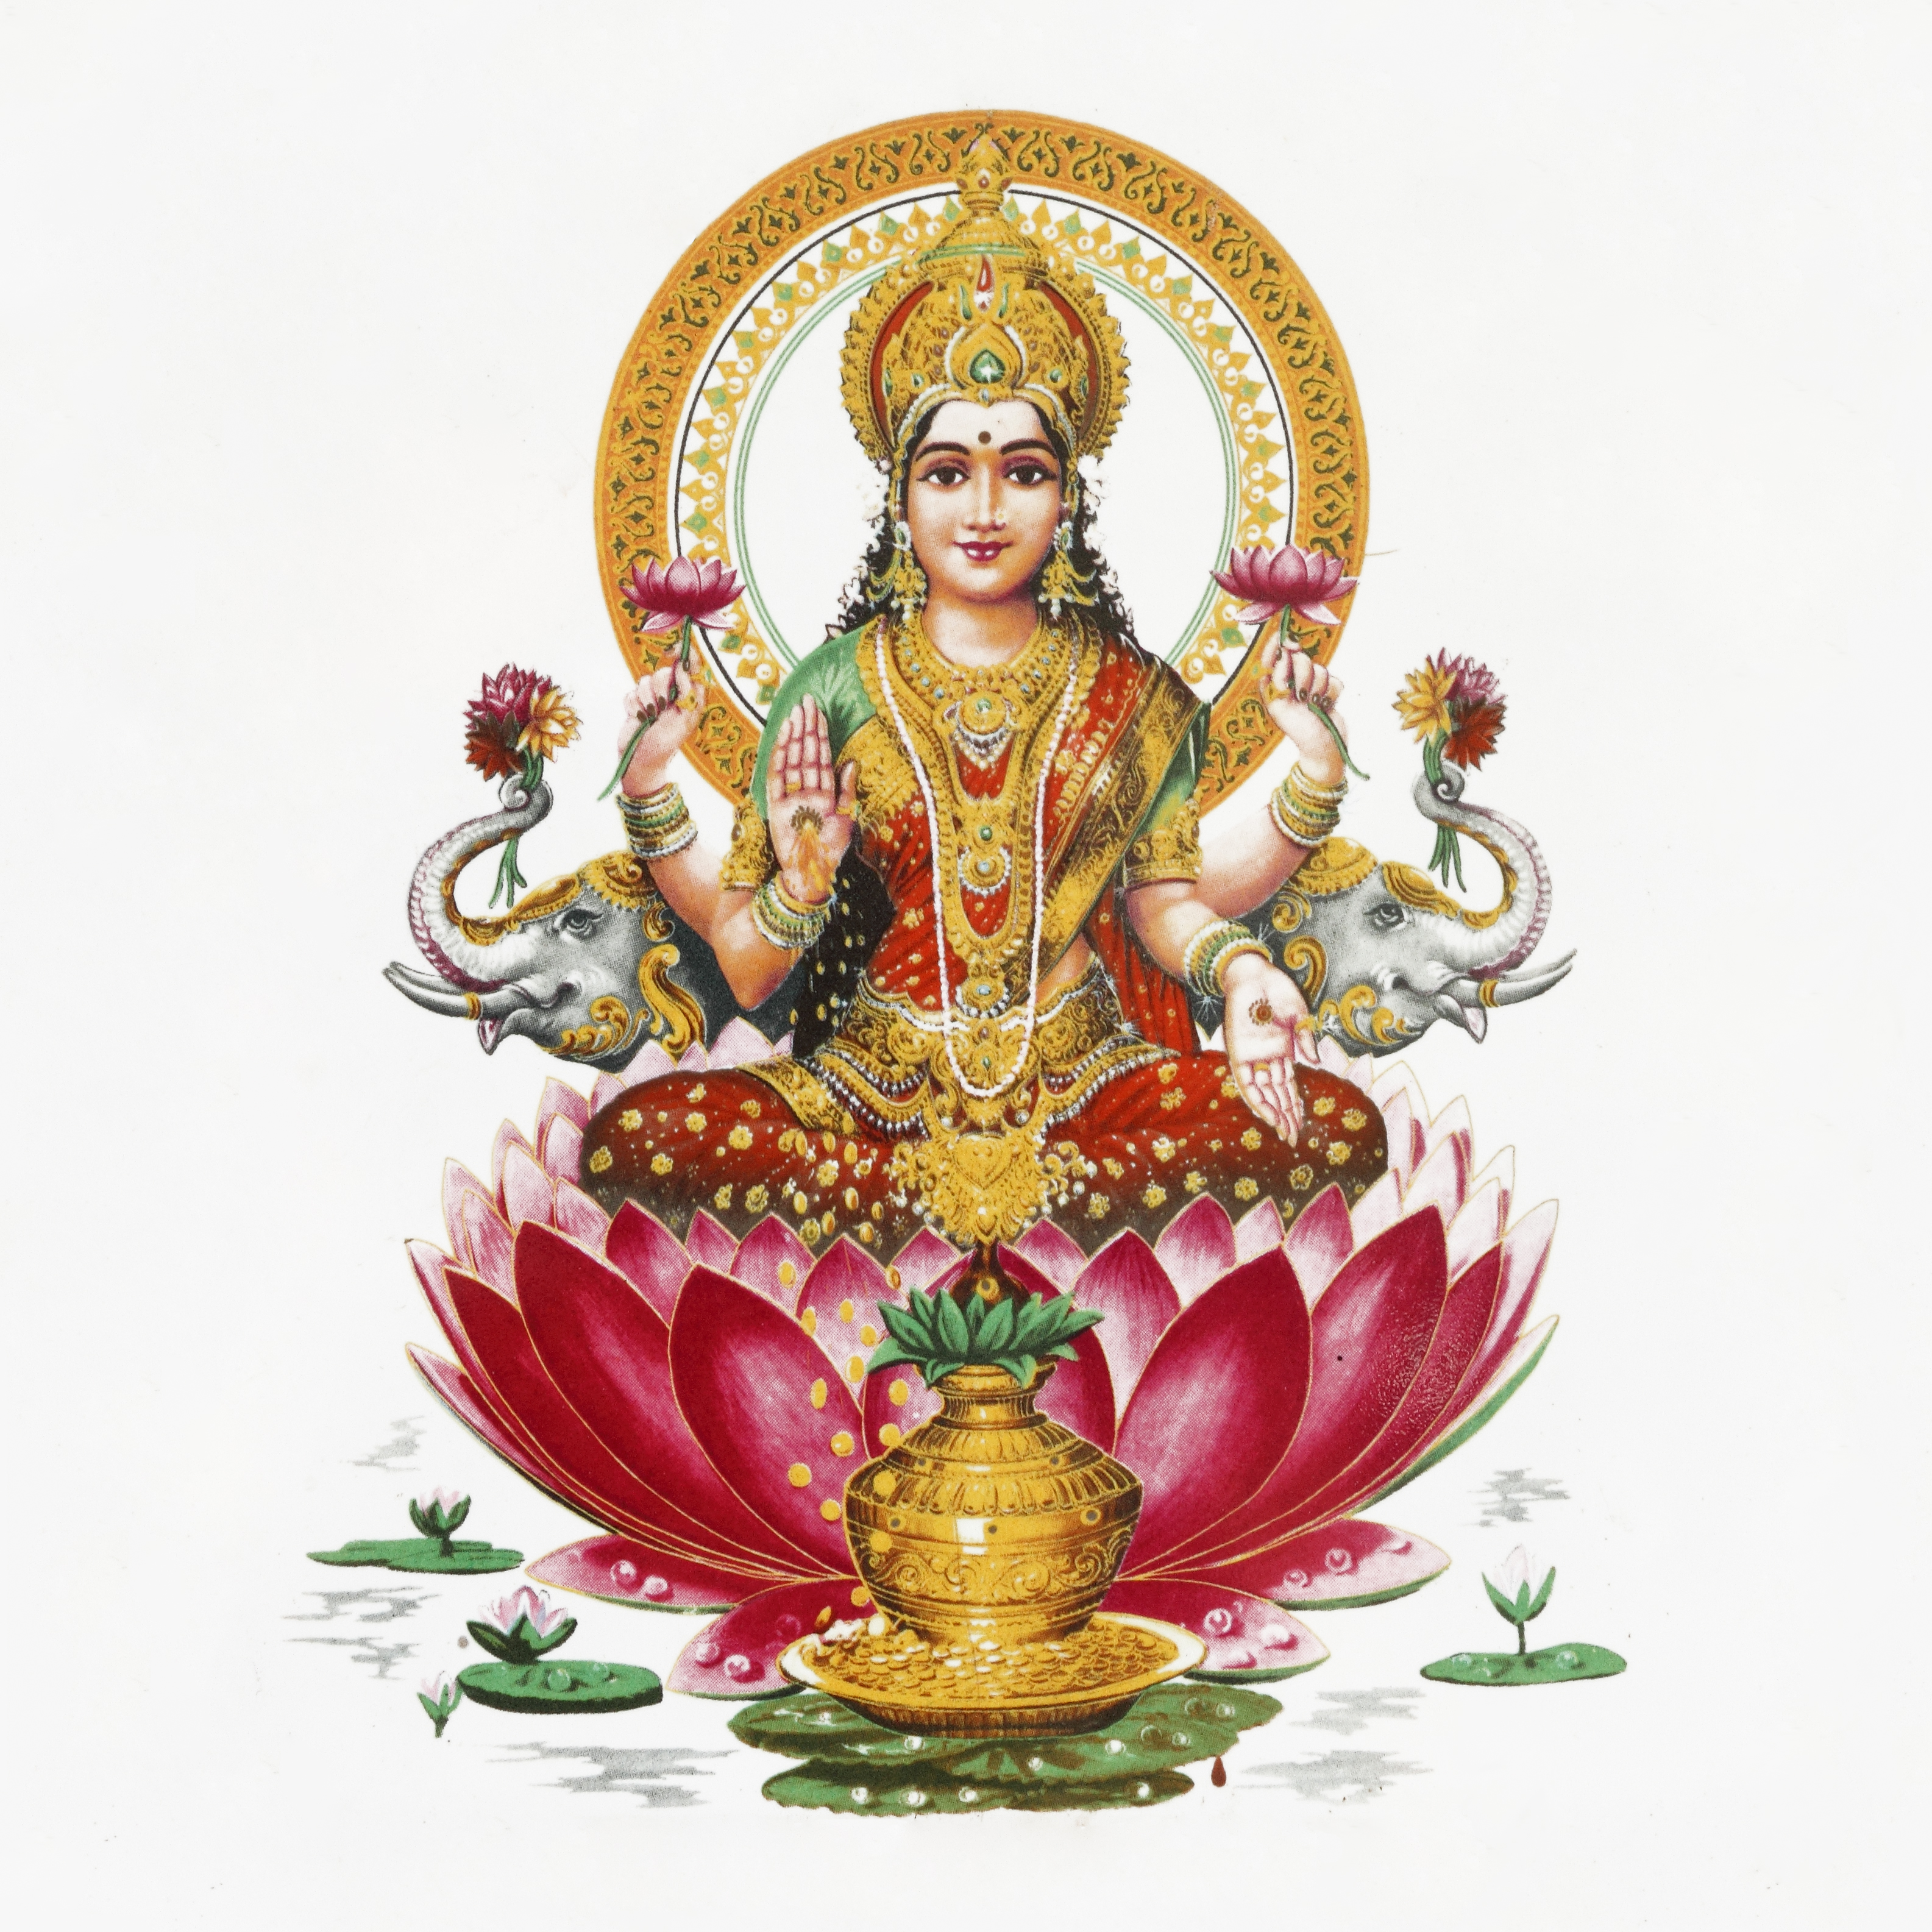 Hindu God Photos: 9 Goddesses To Help With Money, Love, And Protection